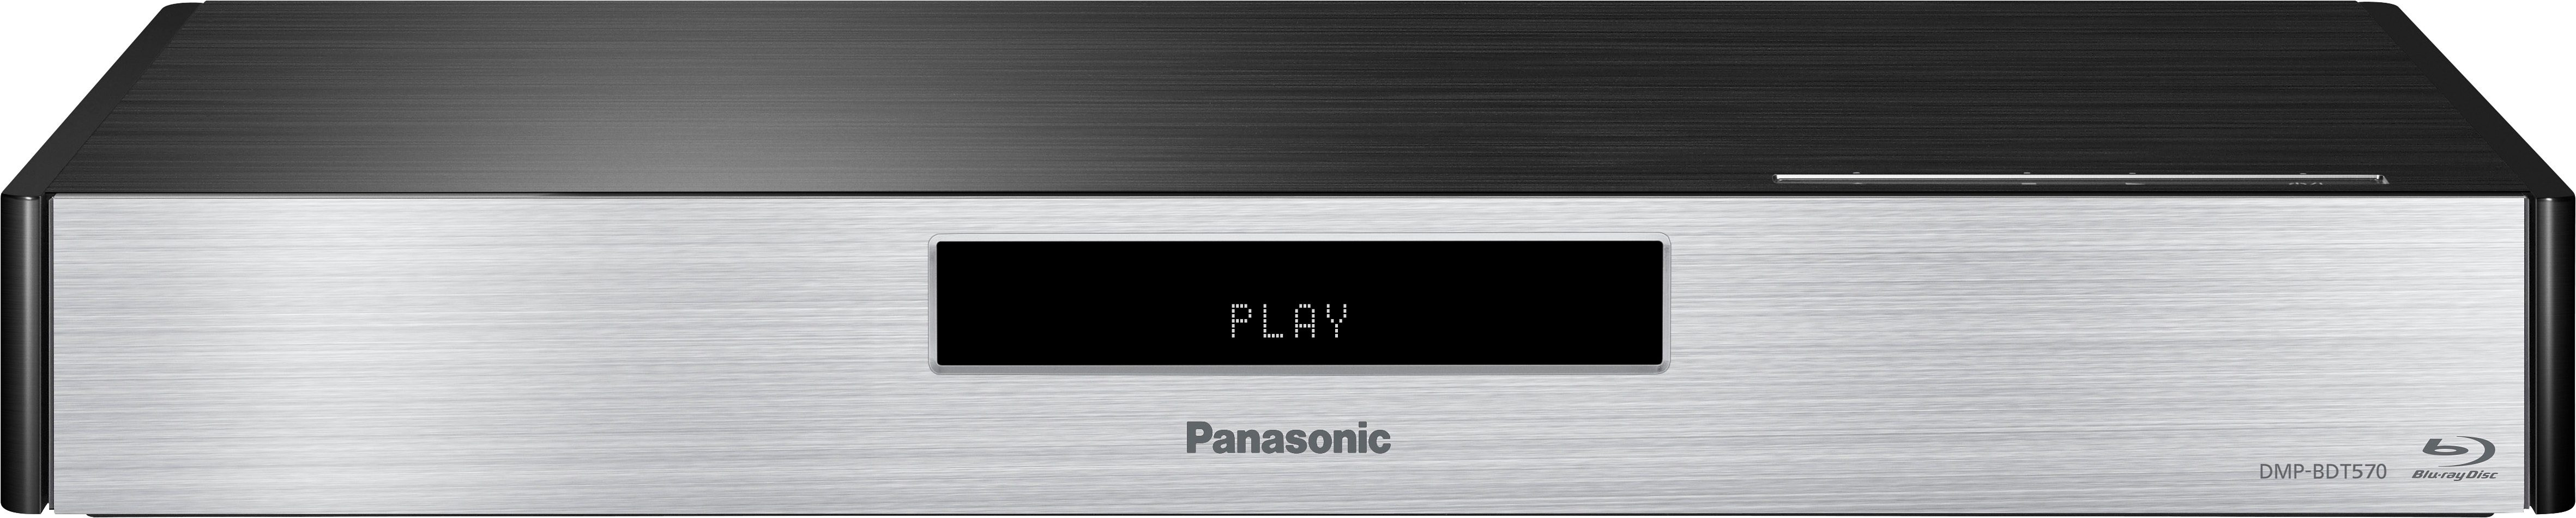 Panasonic Blu Ray Player »DMP-BDT570EG«